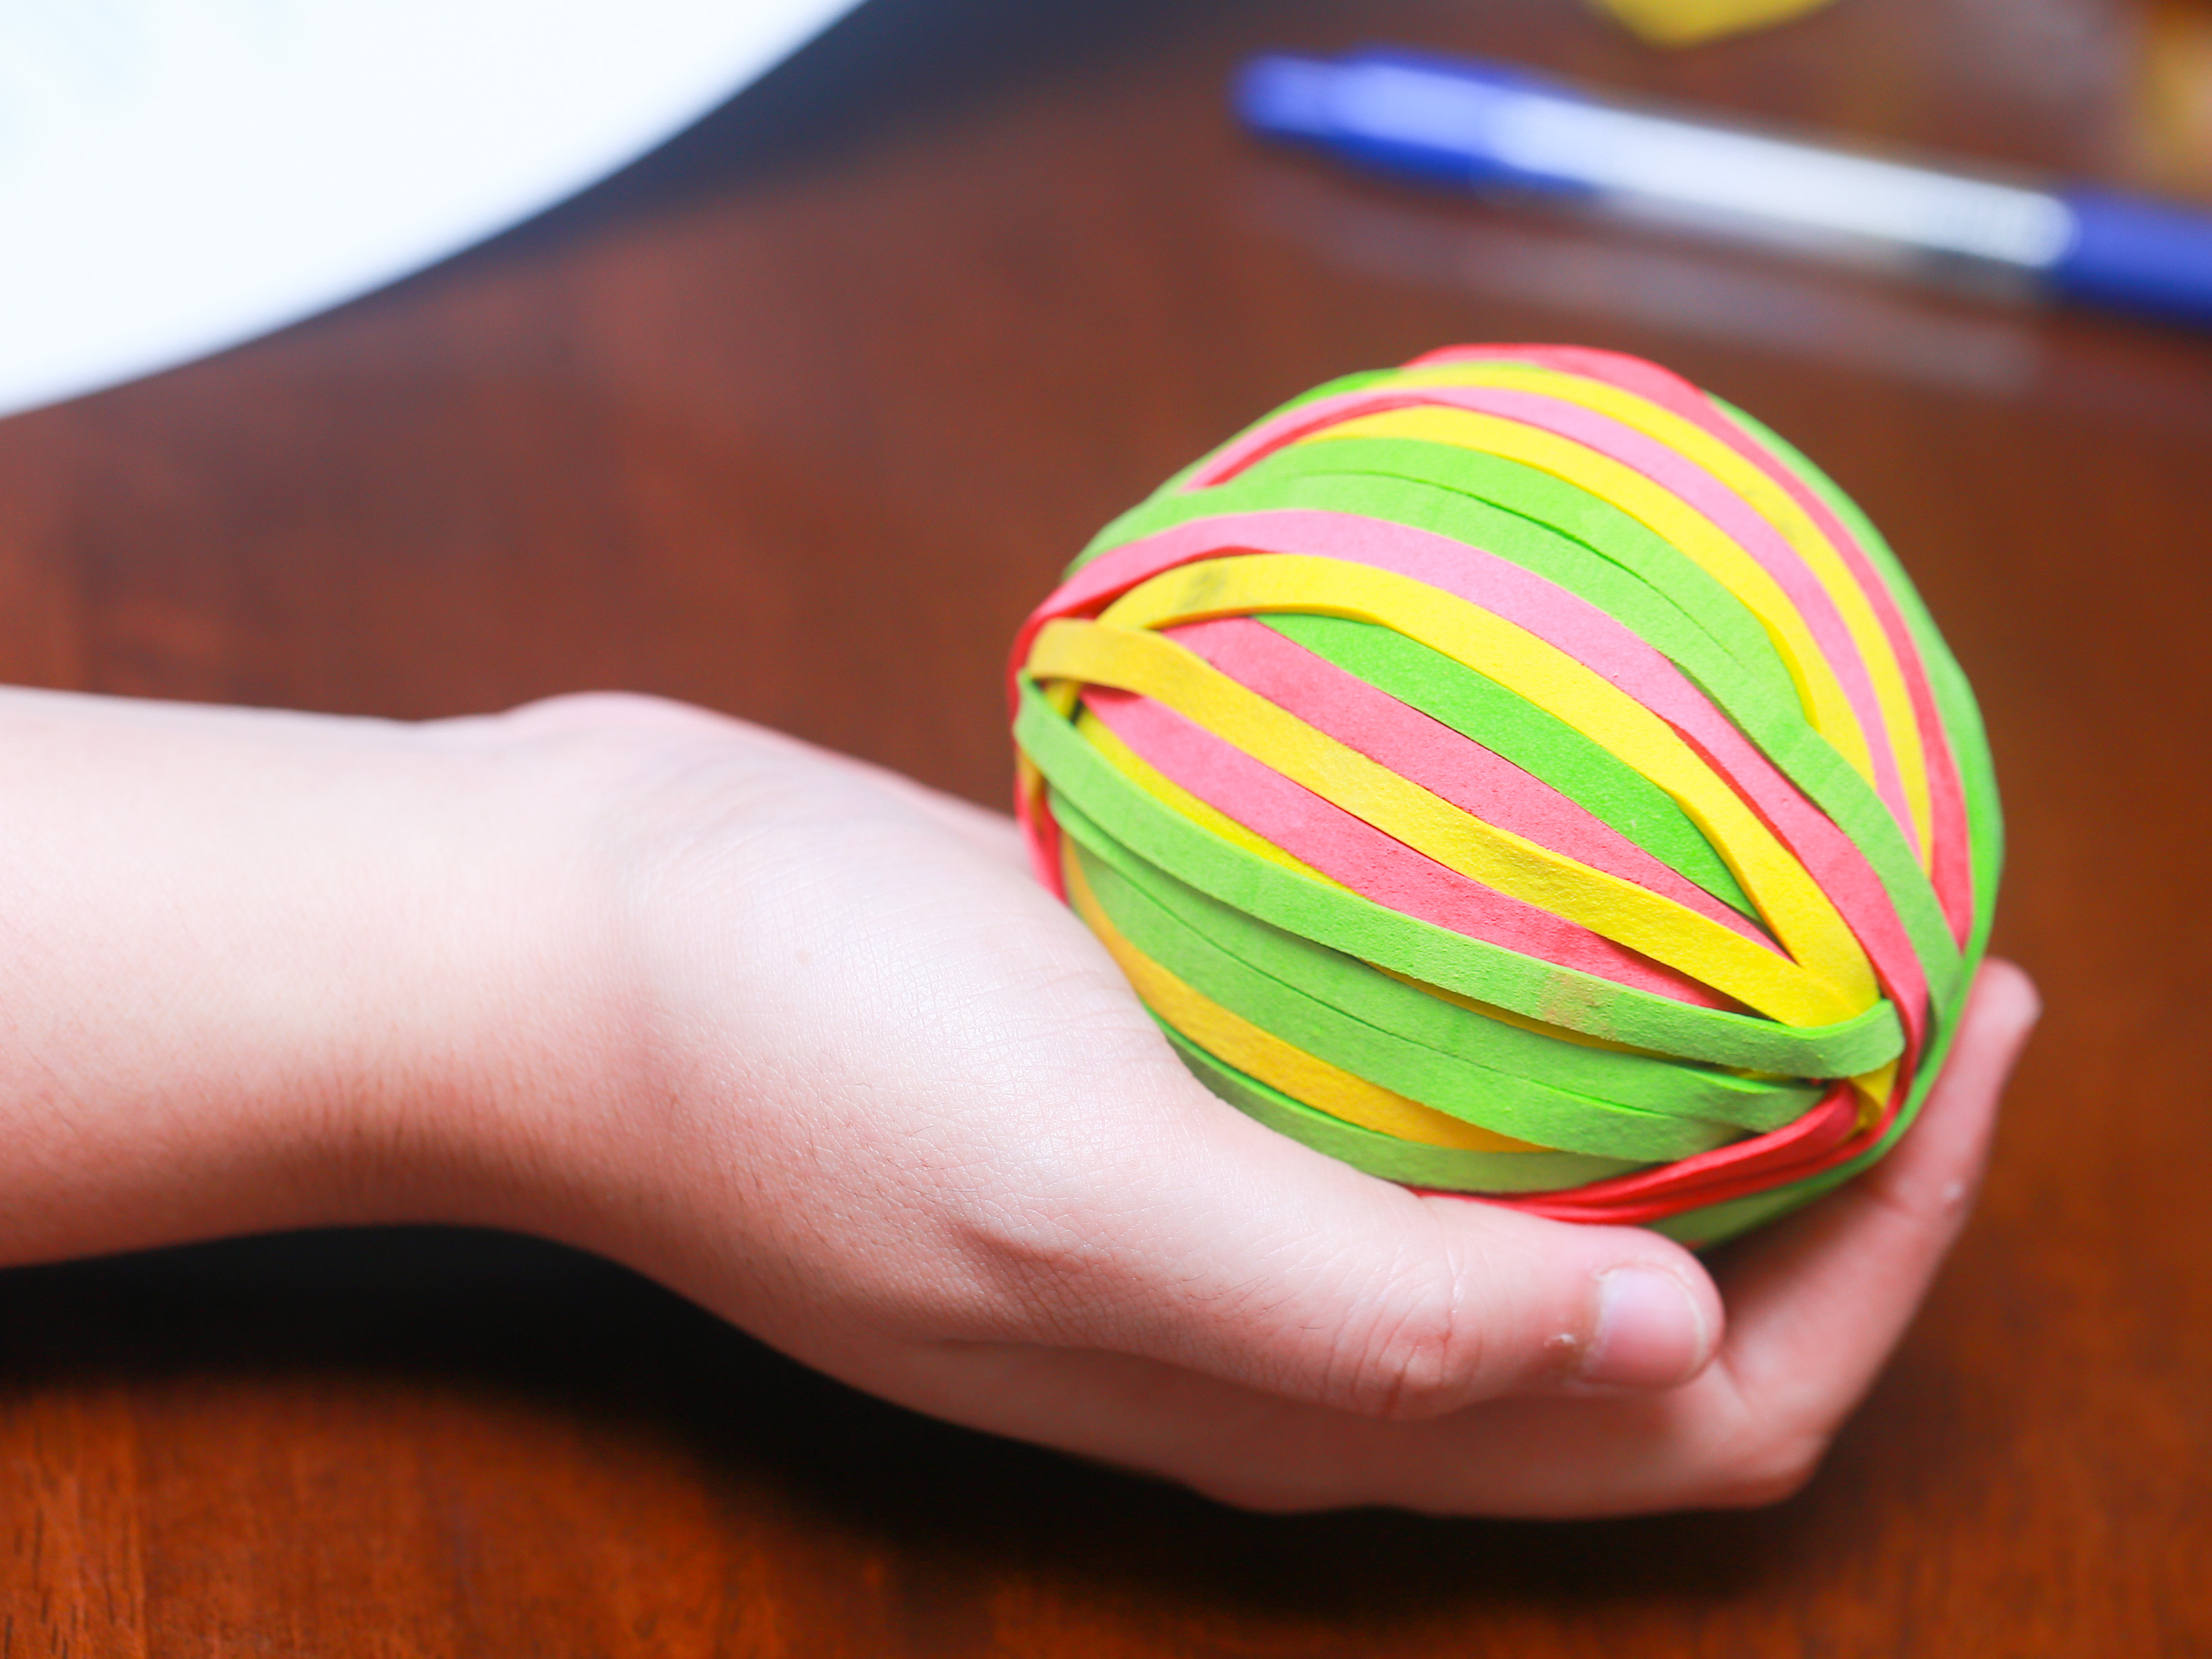 How To Make A Rubber Band Ball 8 Steps With Pictures